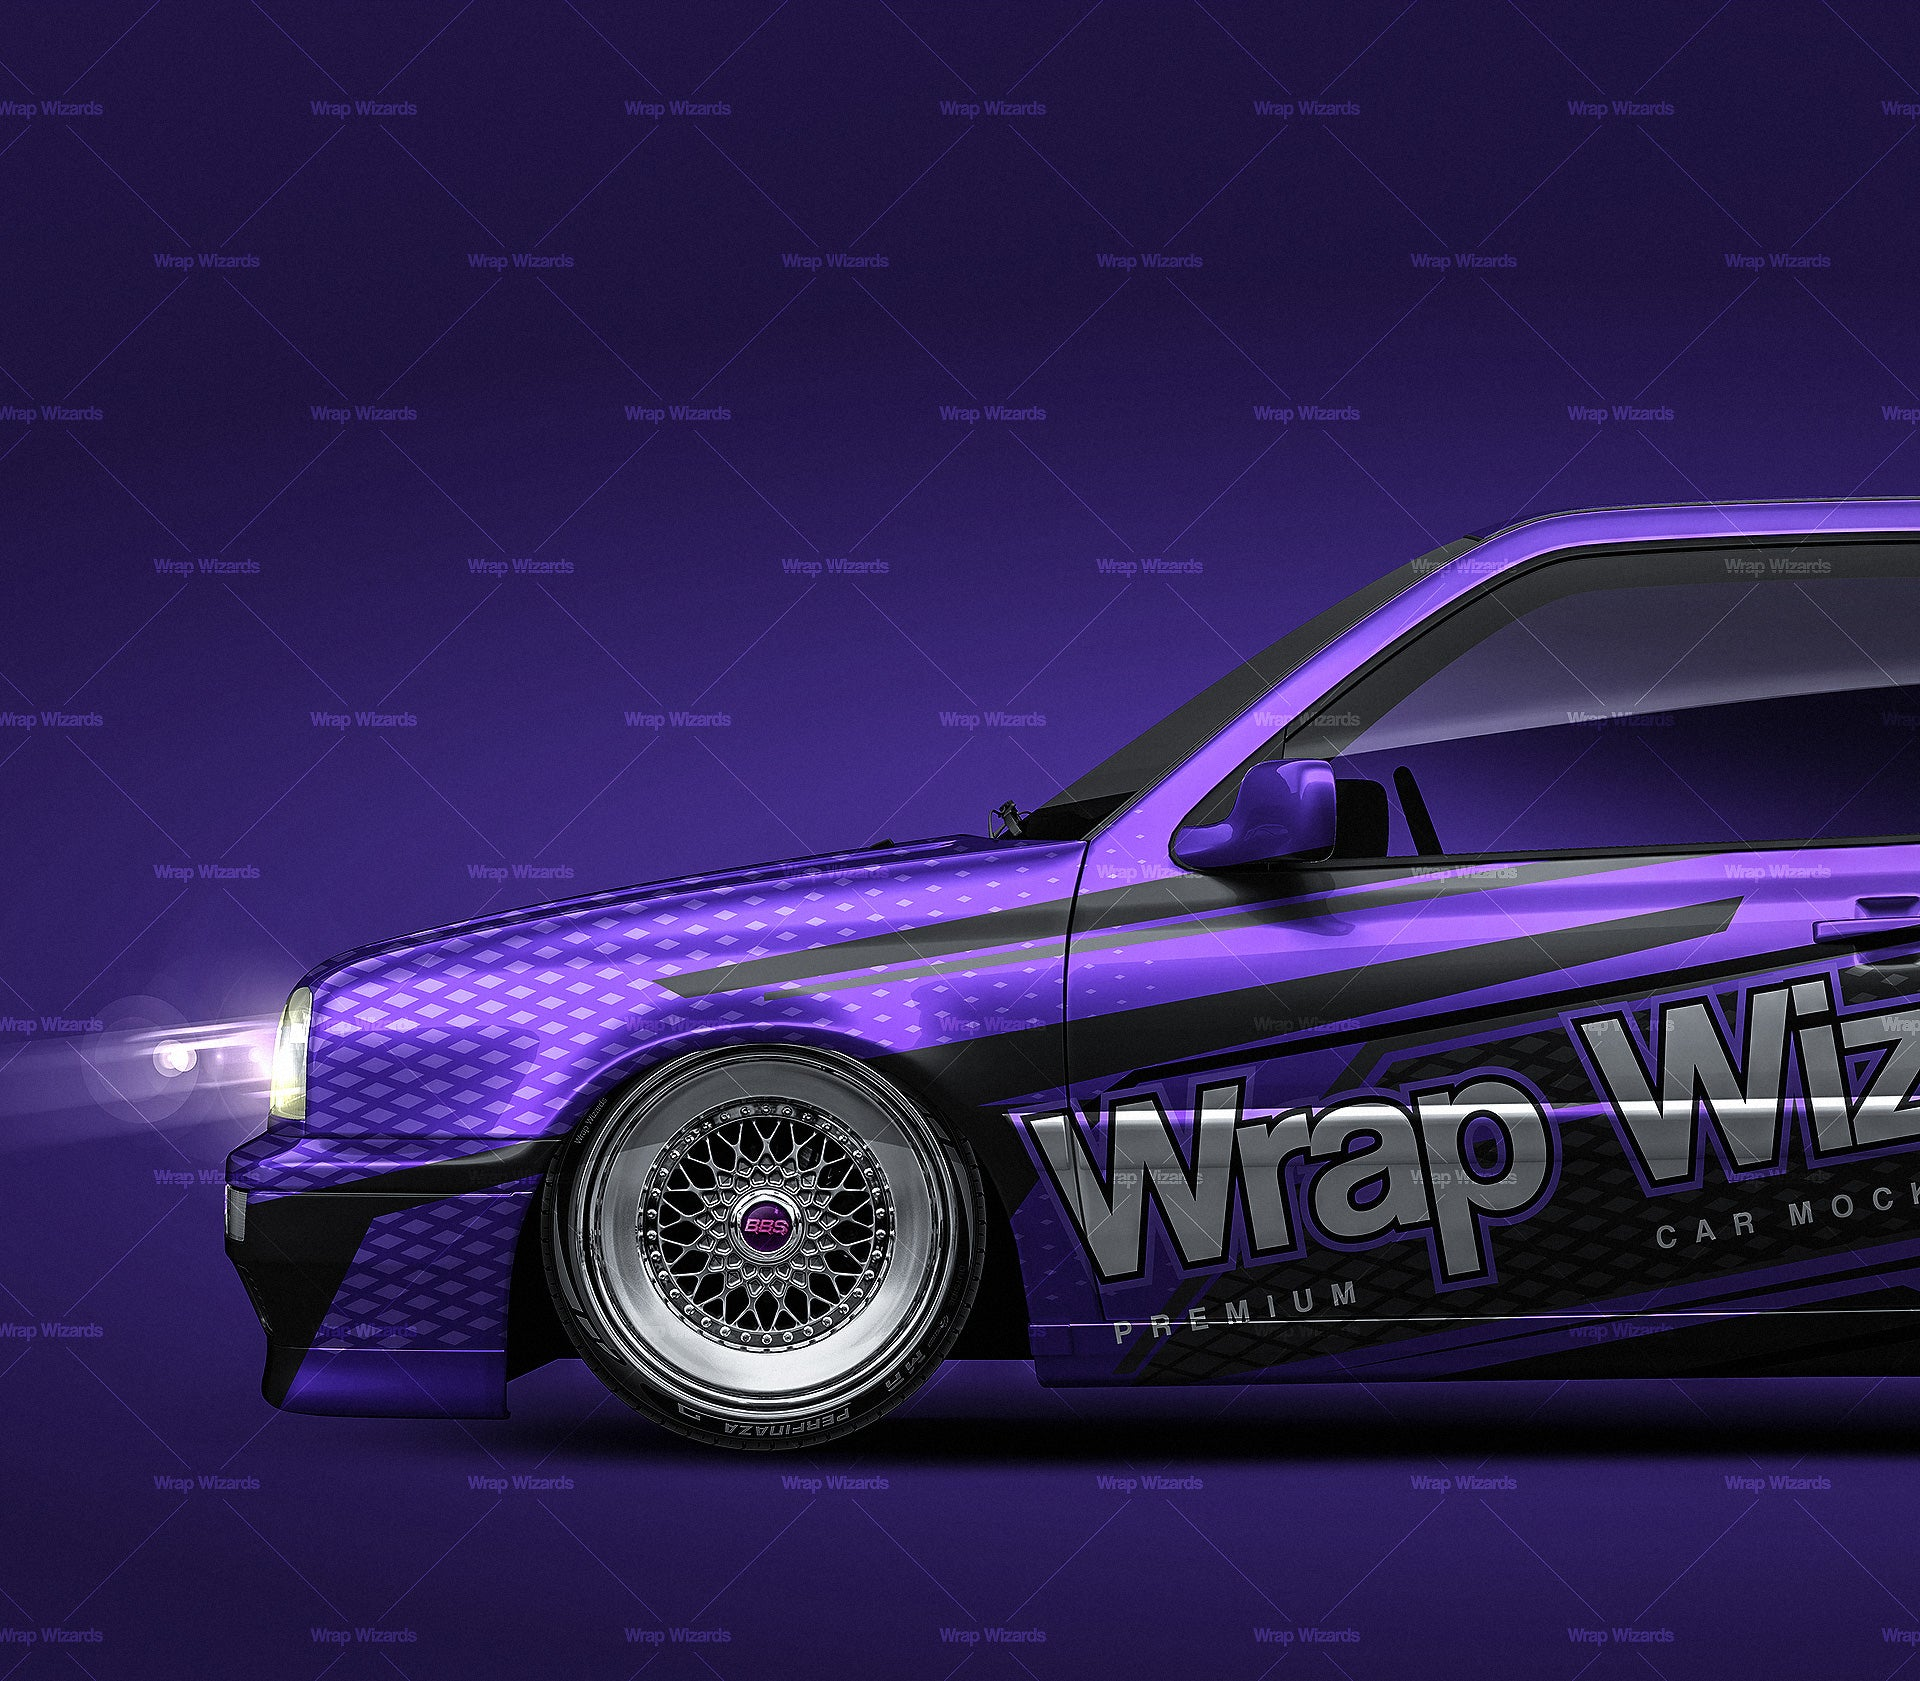 Volkswagen Golf MK3 GTI glossy finish - all sides Car Mockup Template.psd